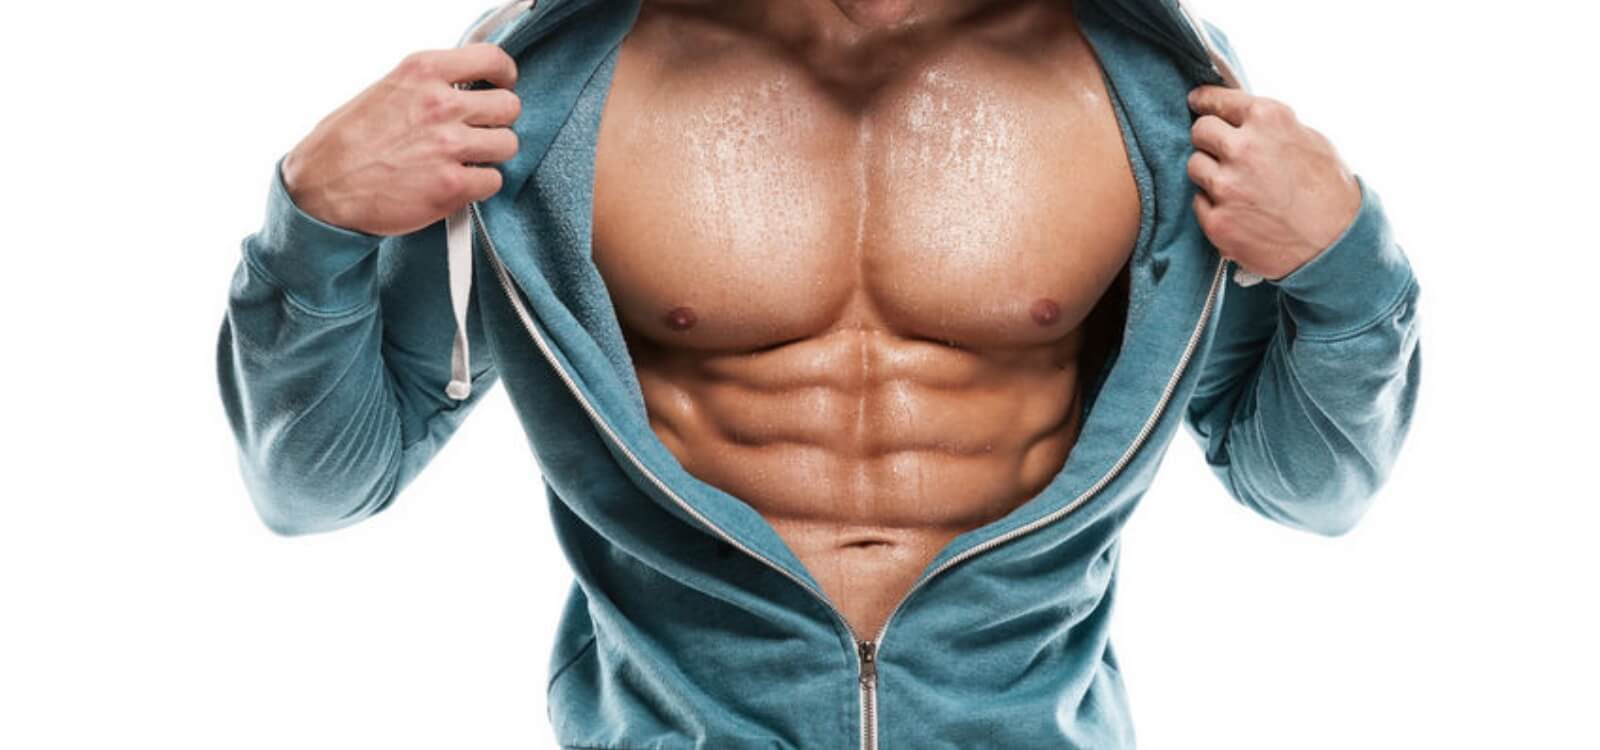 9 Must-try Chest Exercises for Building Muscle